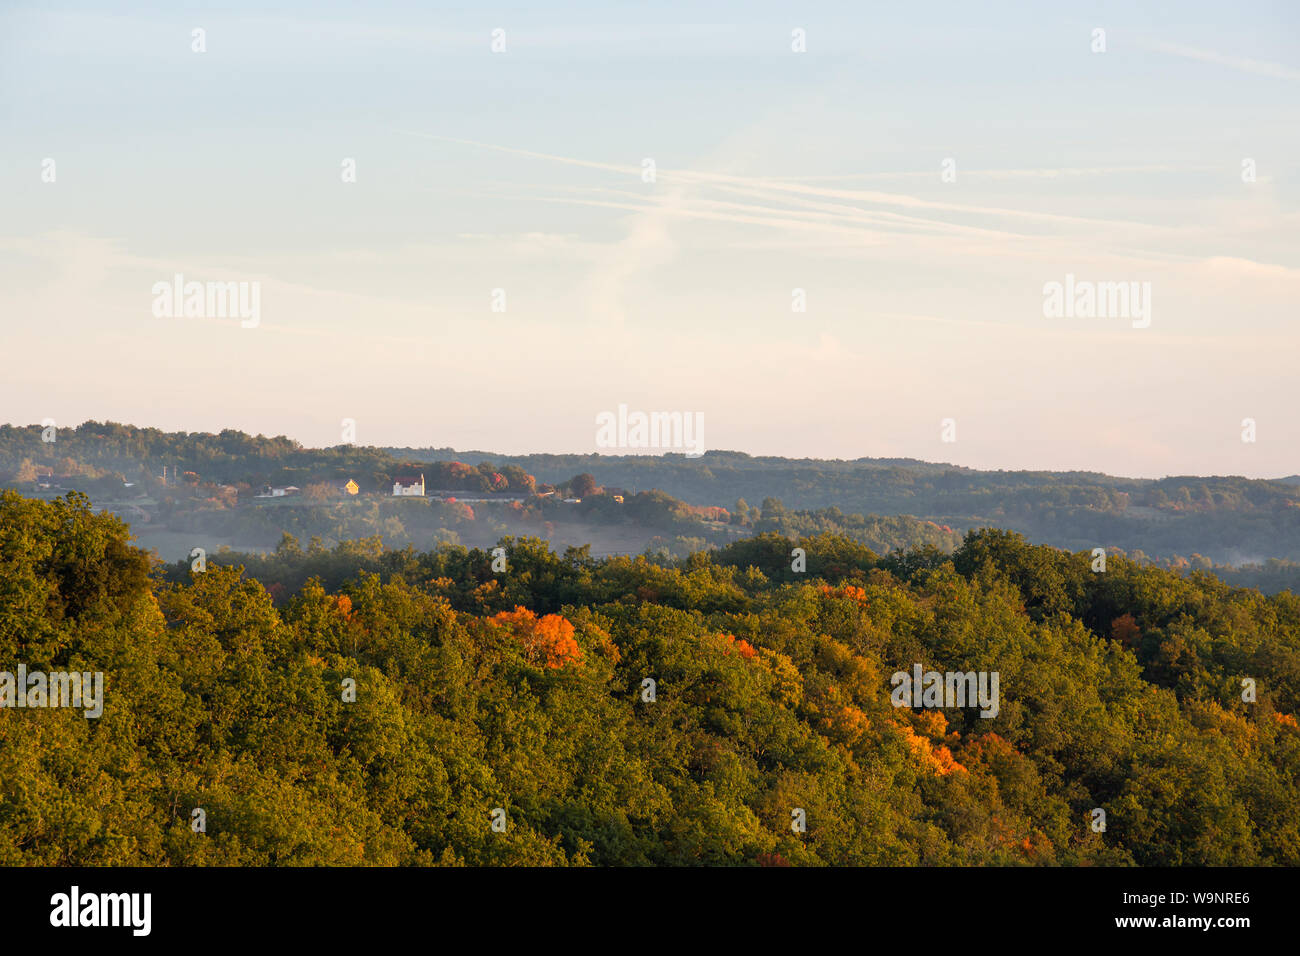 Morning mist rises over a dense forest in the Perigord region of France Stock Photo